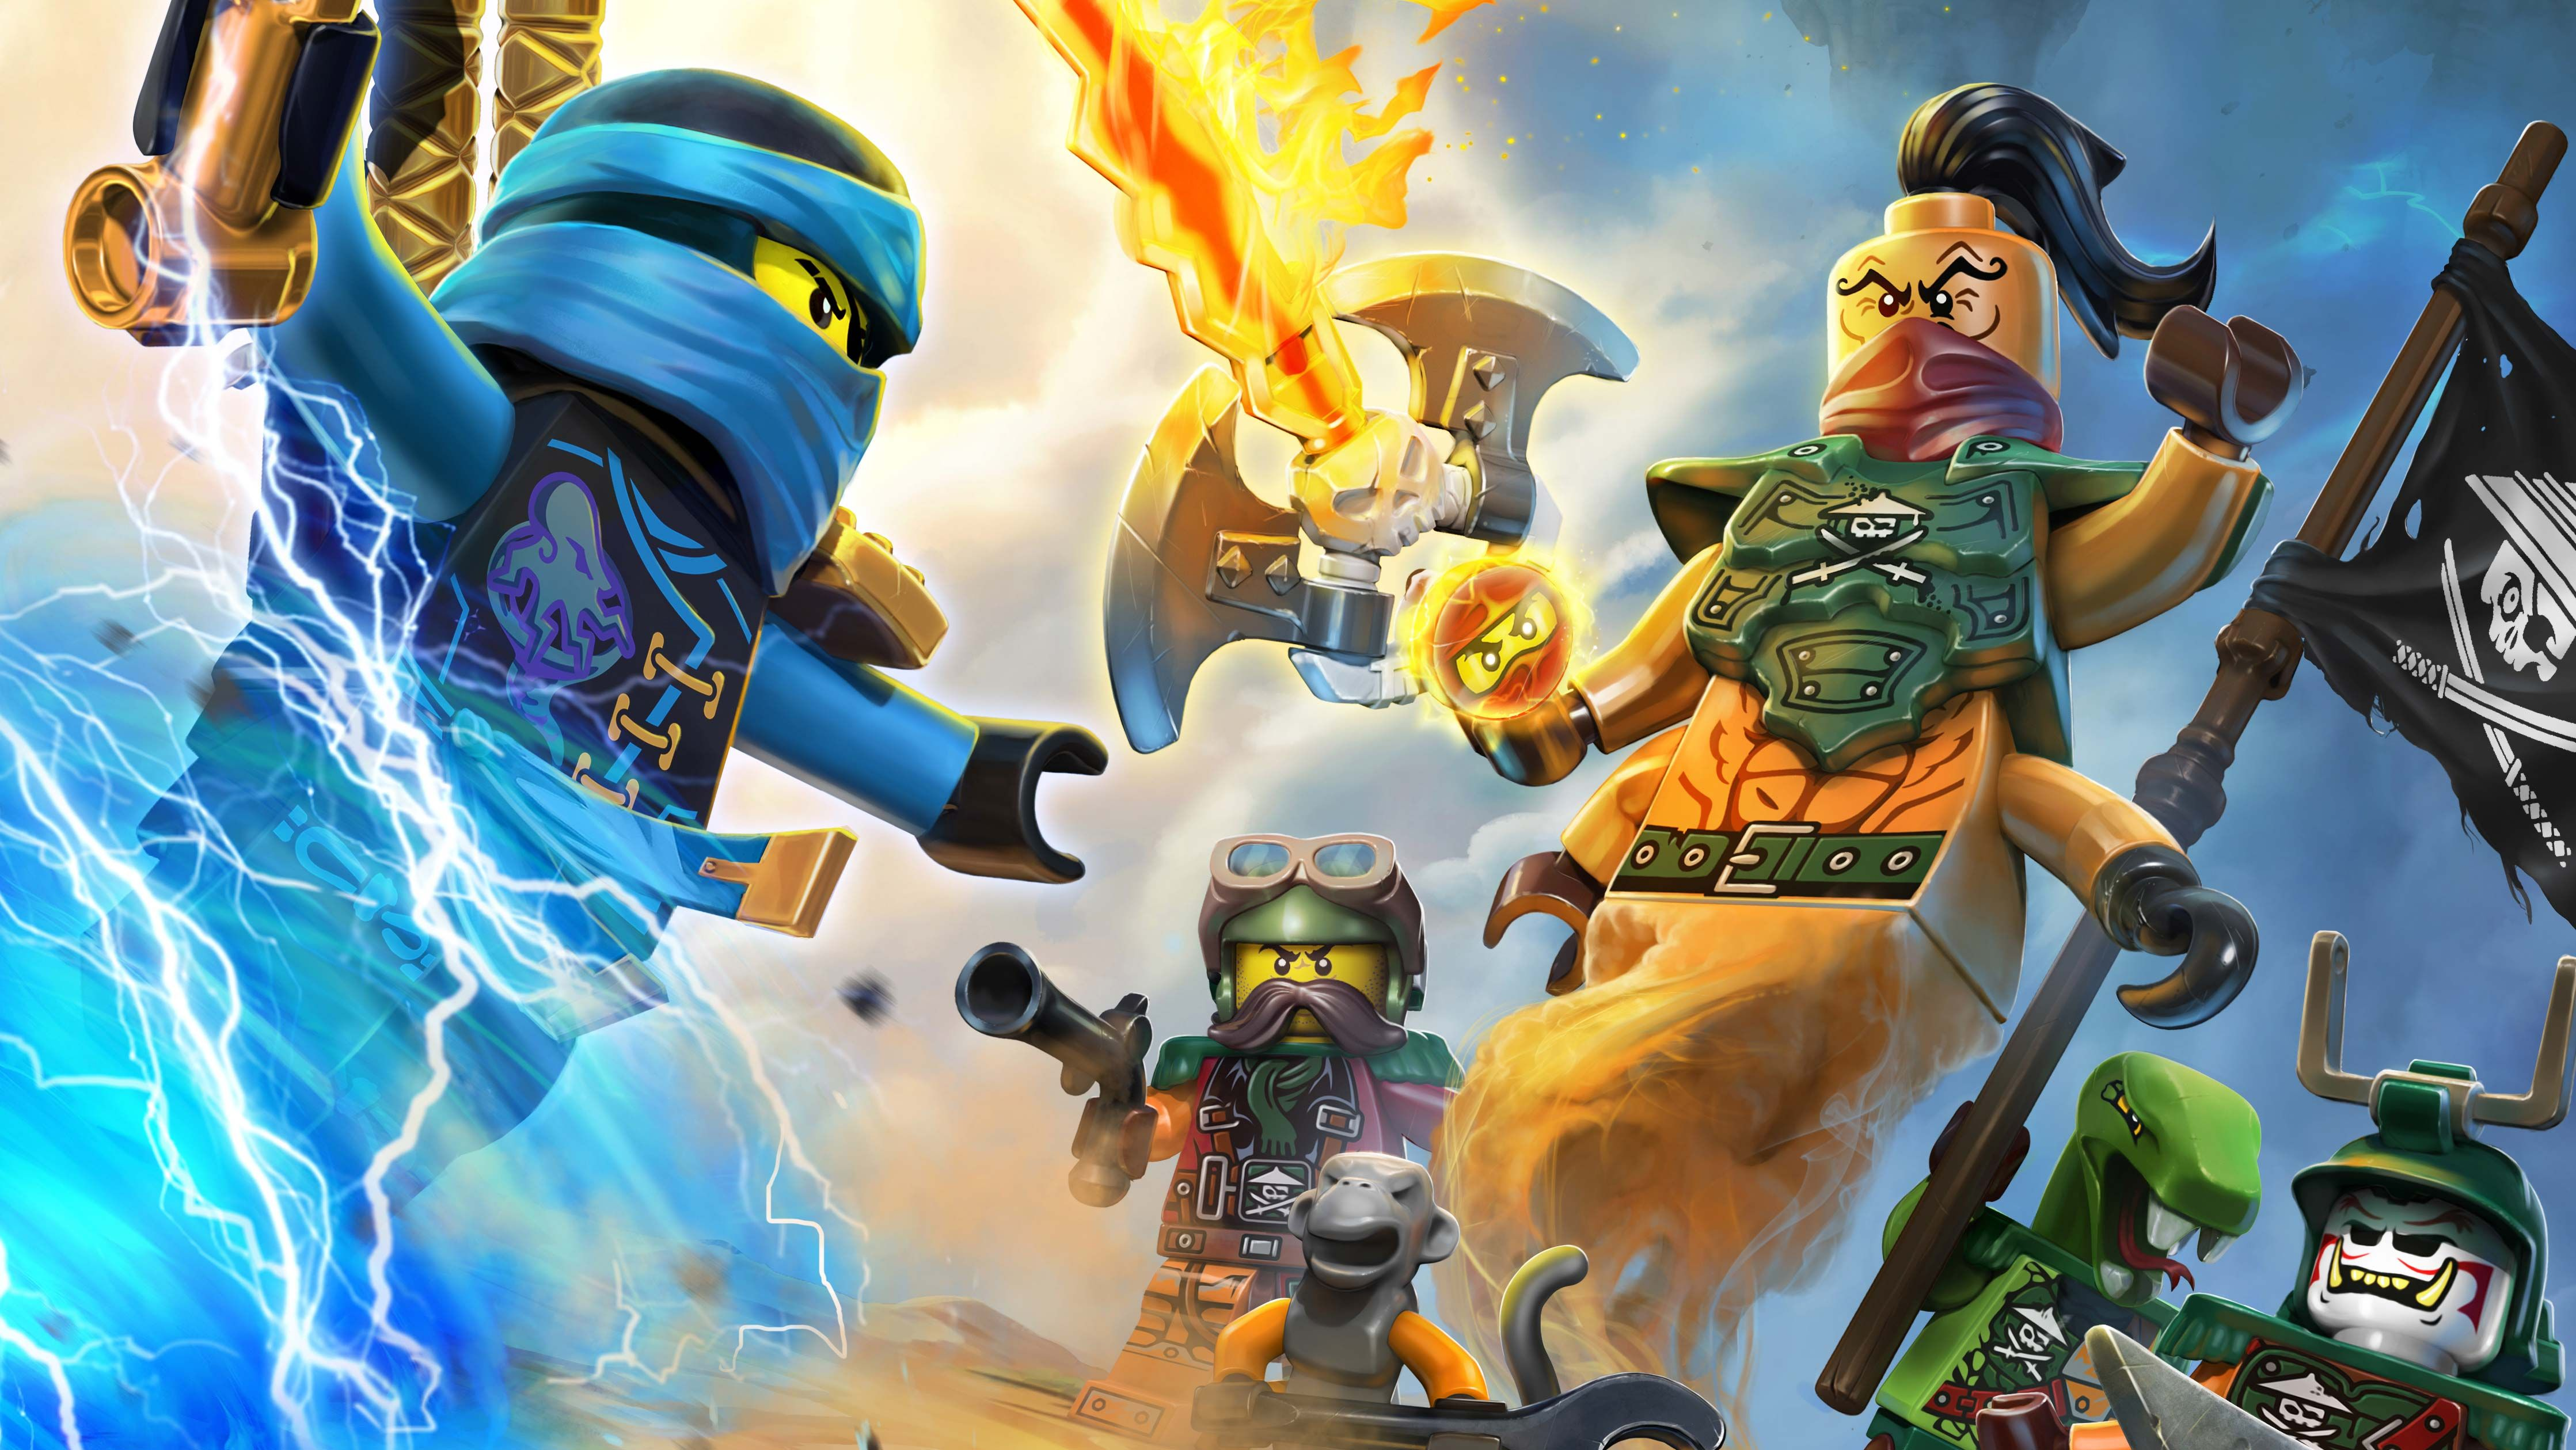 Home ninjago lego ninjago party pinterest ninjago 2016 lego ninjago and lego - Ninja ninjago ...